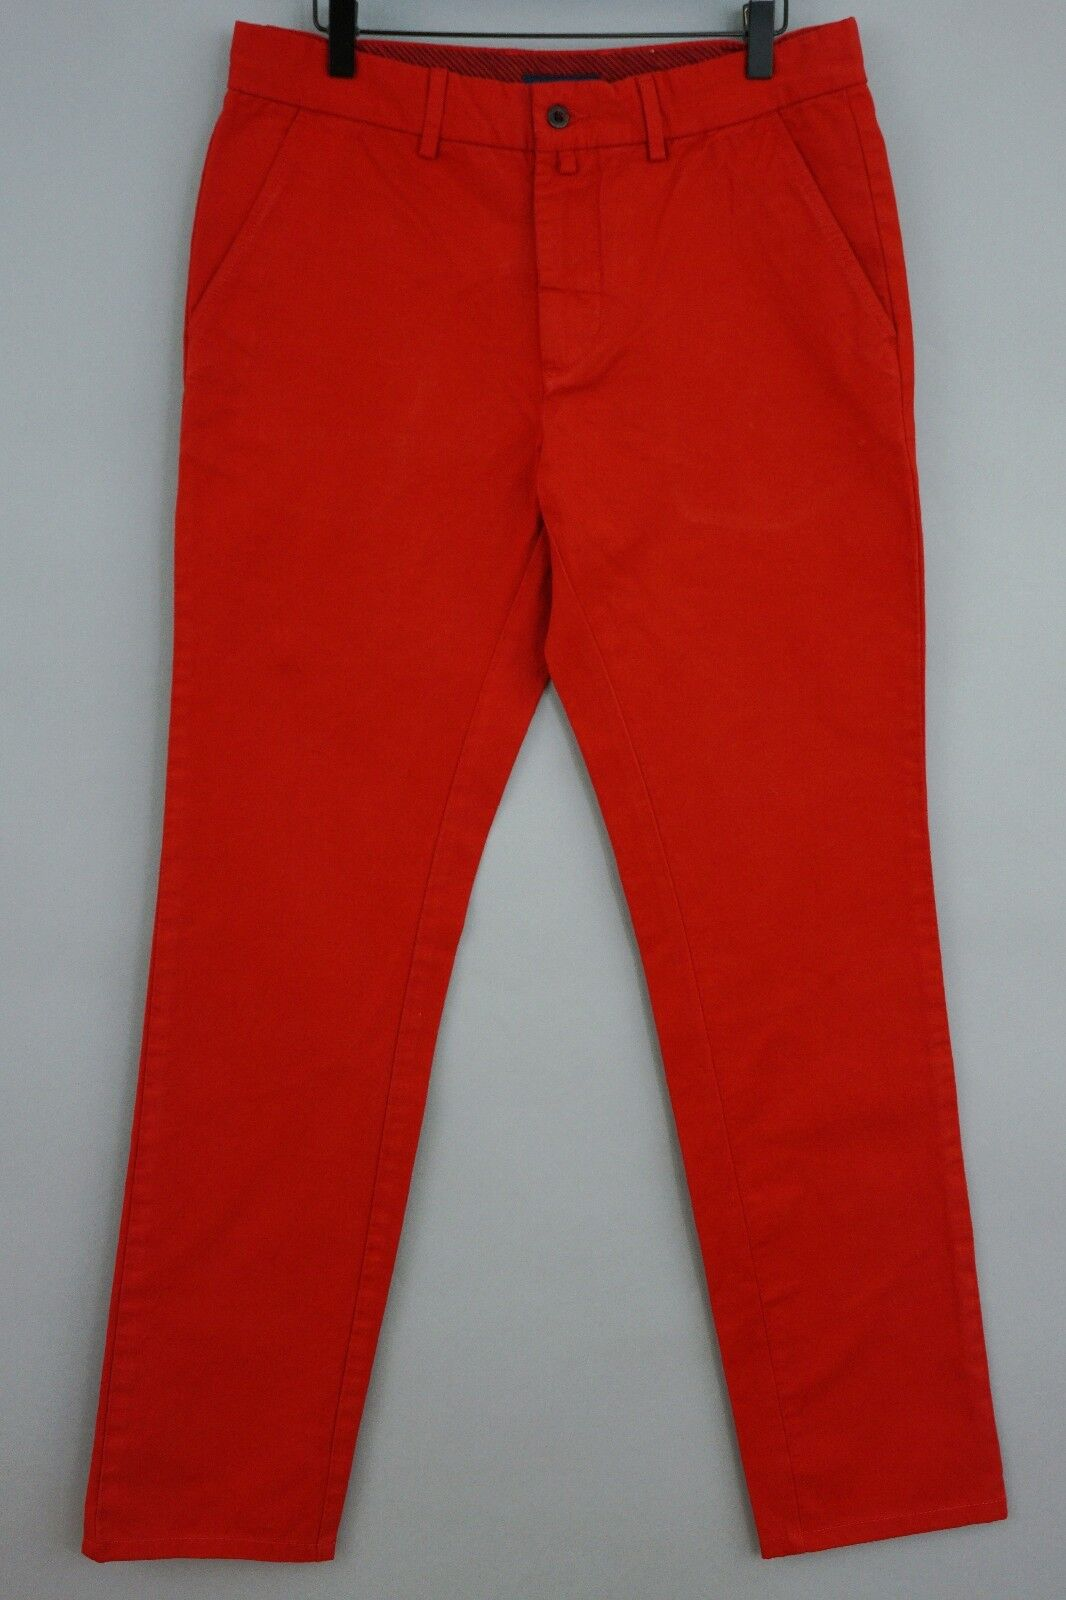 Men Gant Trousers Soho Red Slim Fit Casual Size W31 L32 JCA35